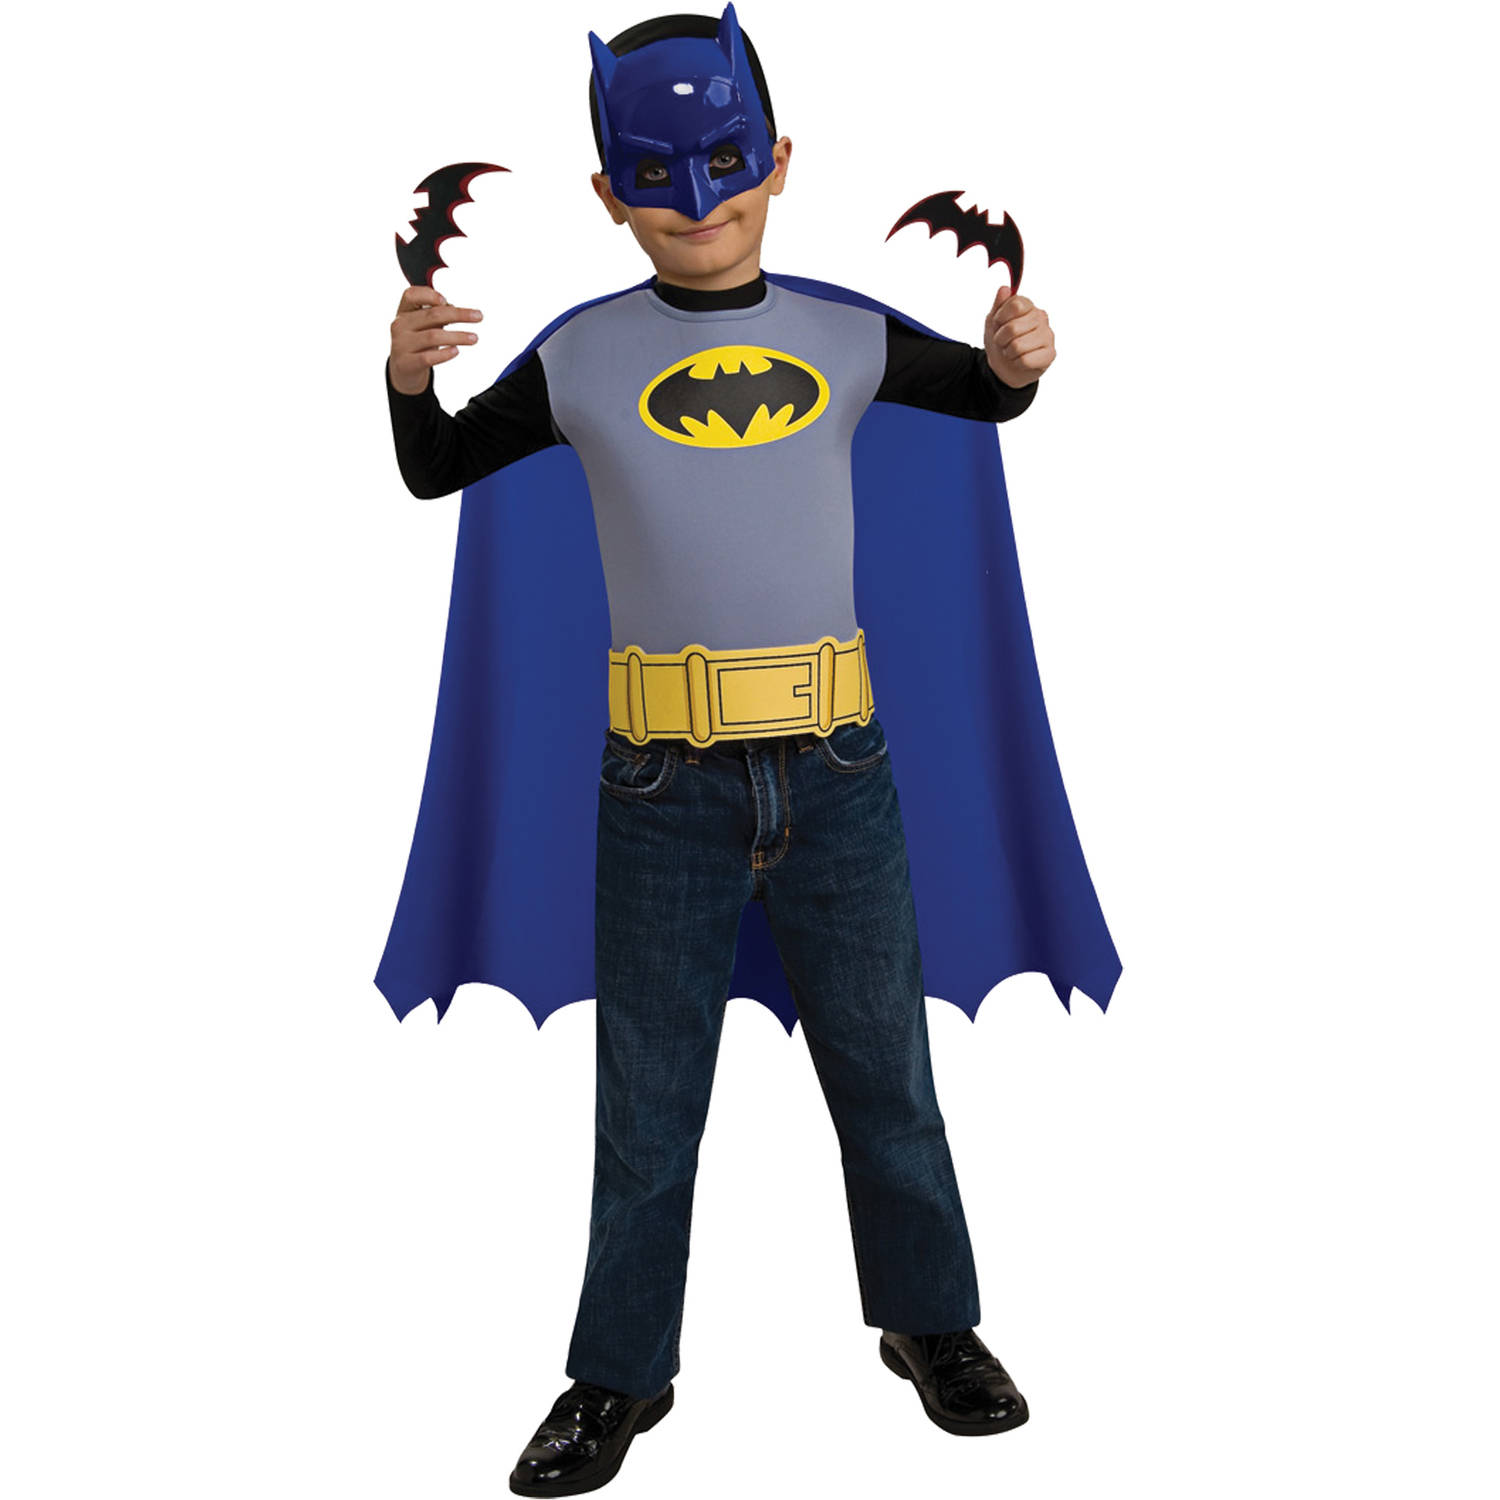 Batman The Brave And The Bold Childs Complete Costume And Accessory Set